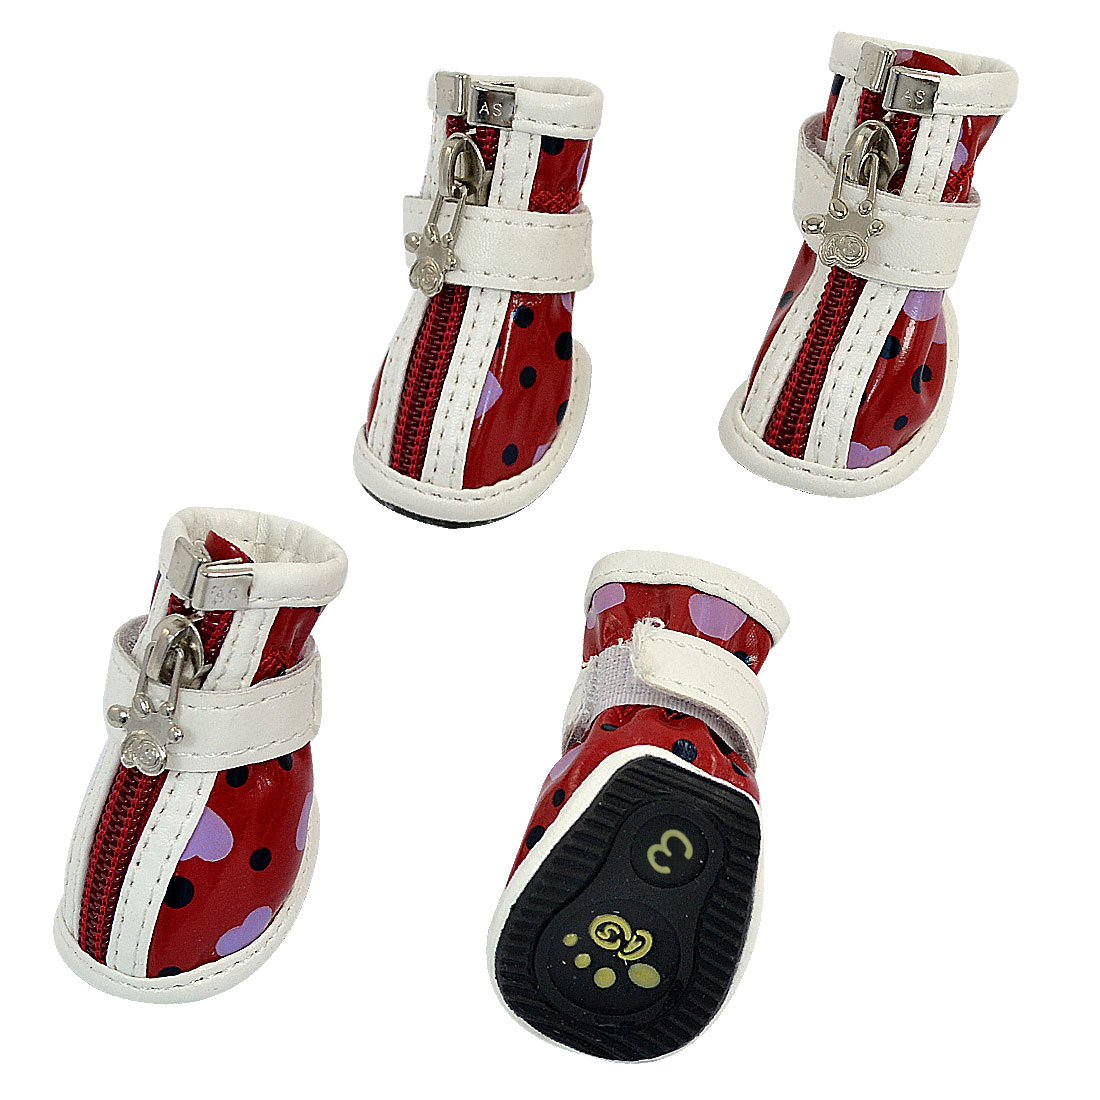 2 Pair Hook Loop Closure Zip Up Pet Dog Doggy Shoes Boots Booties Red White Size XS